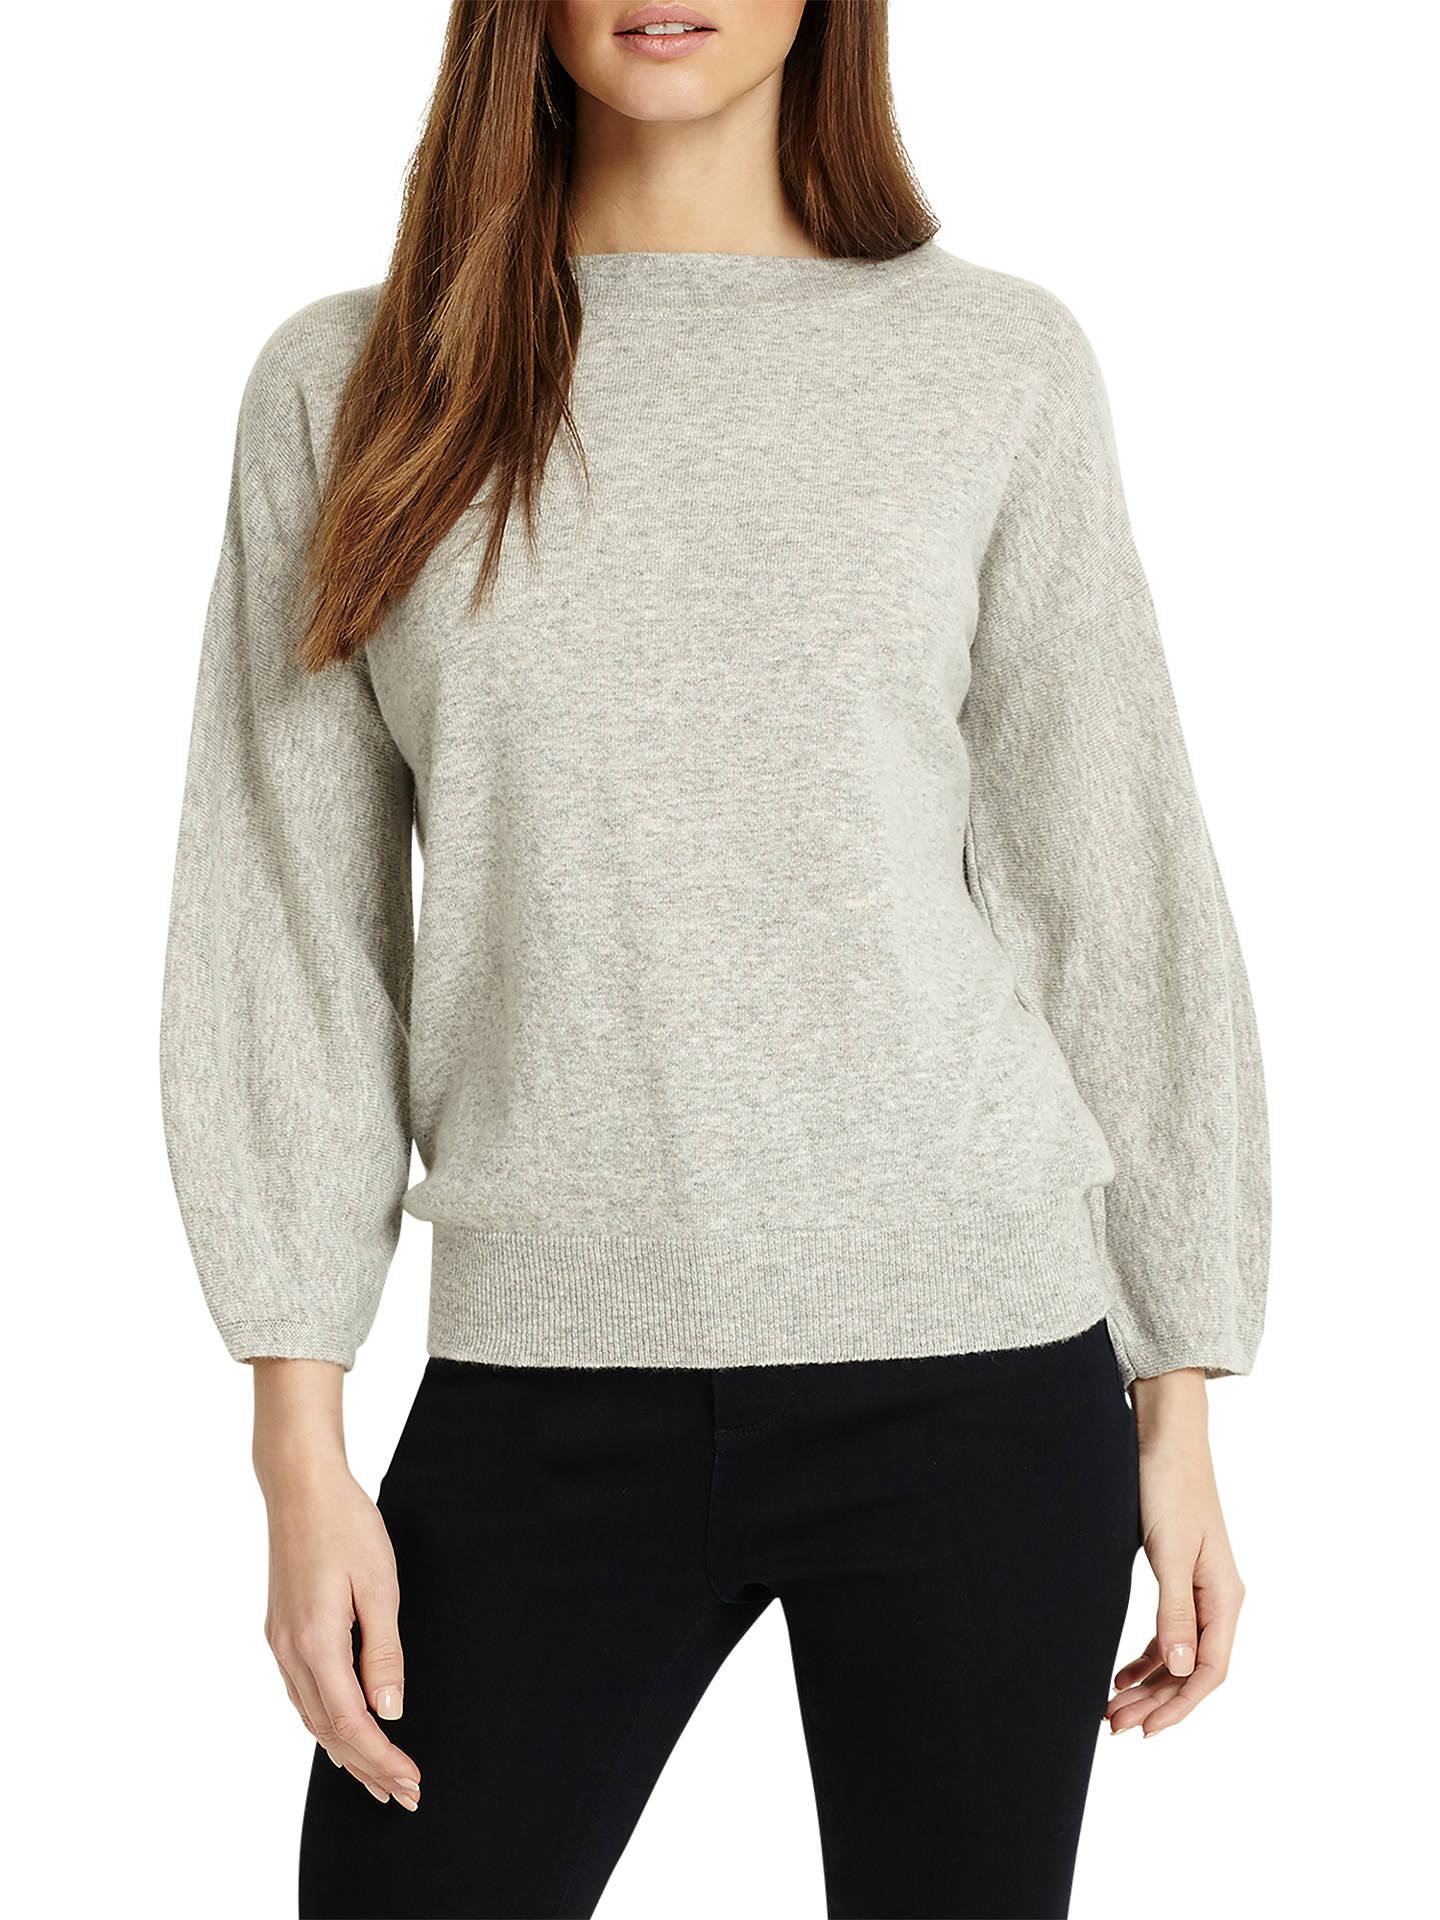 BuyPhase Eight Bette Balloon Sleeve Jumper, Silver Grey, 14 Online at johnlewis.com